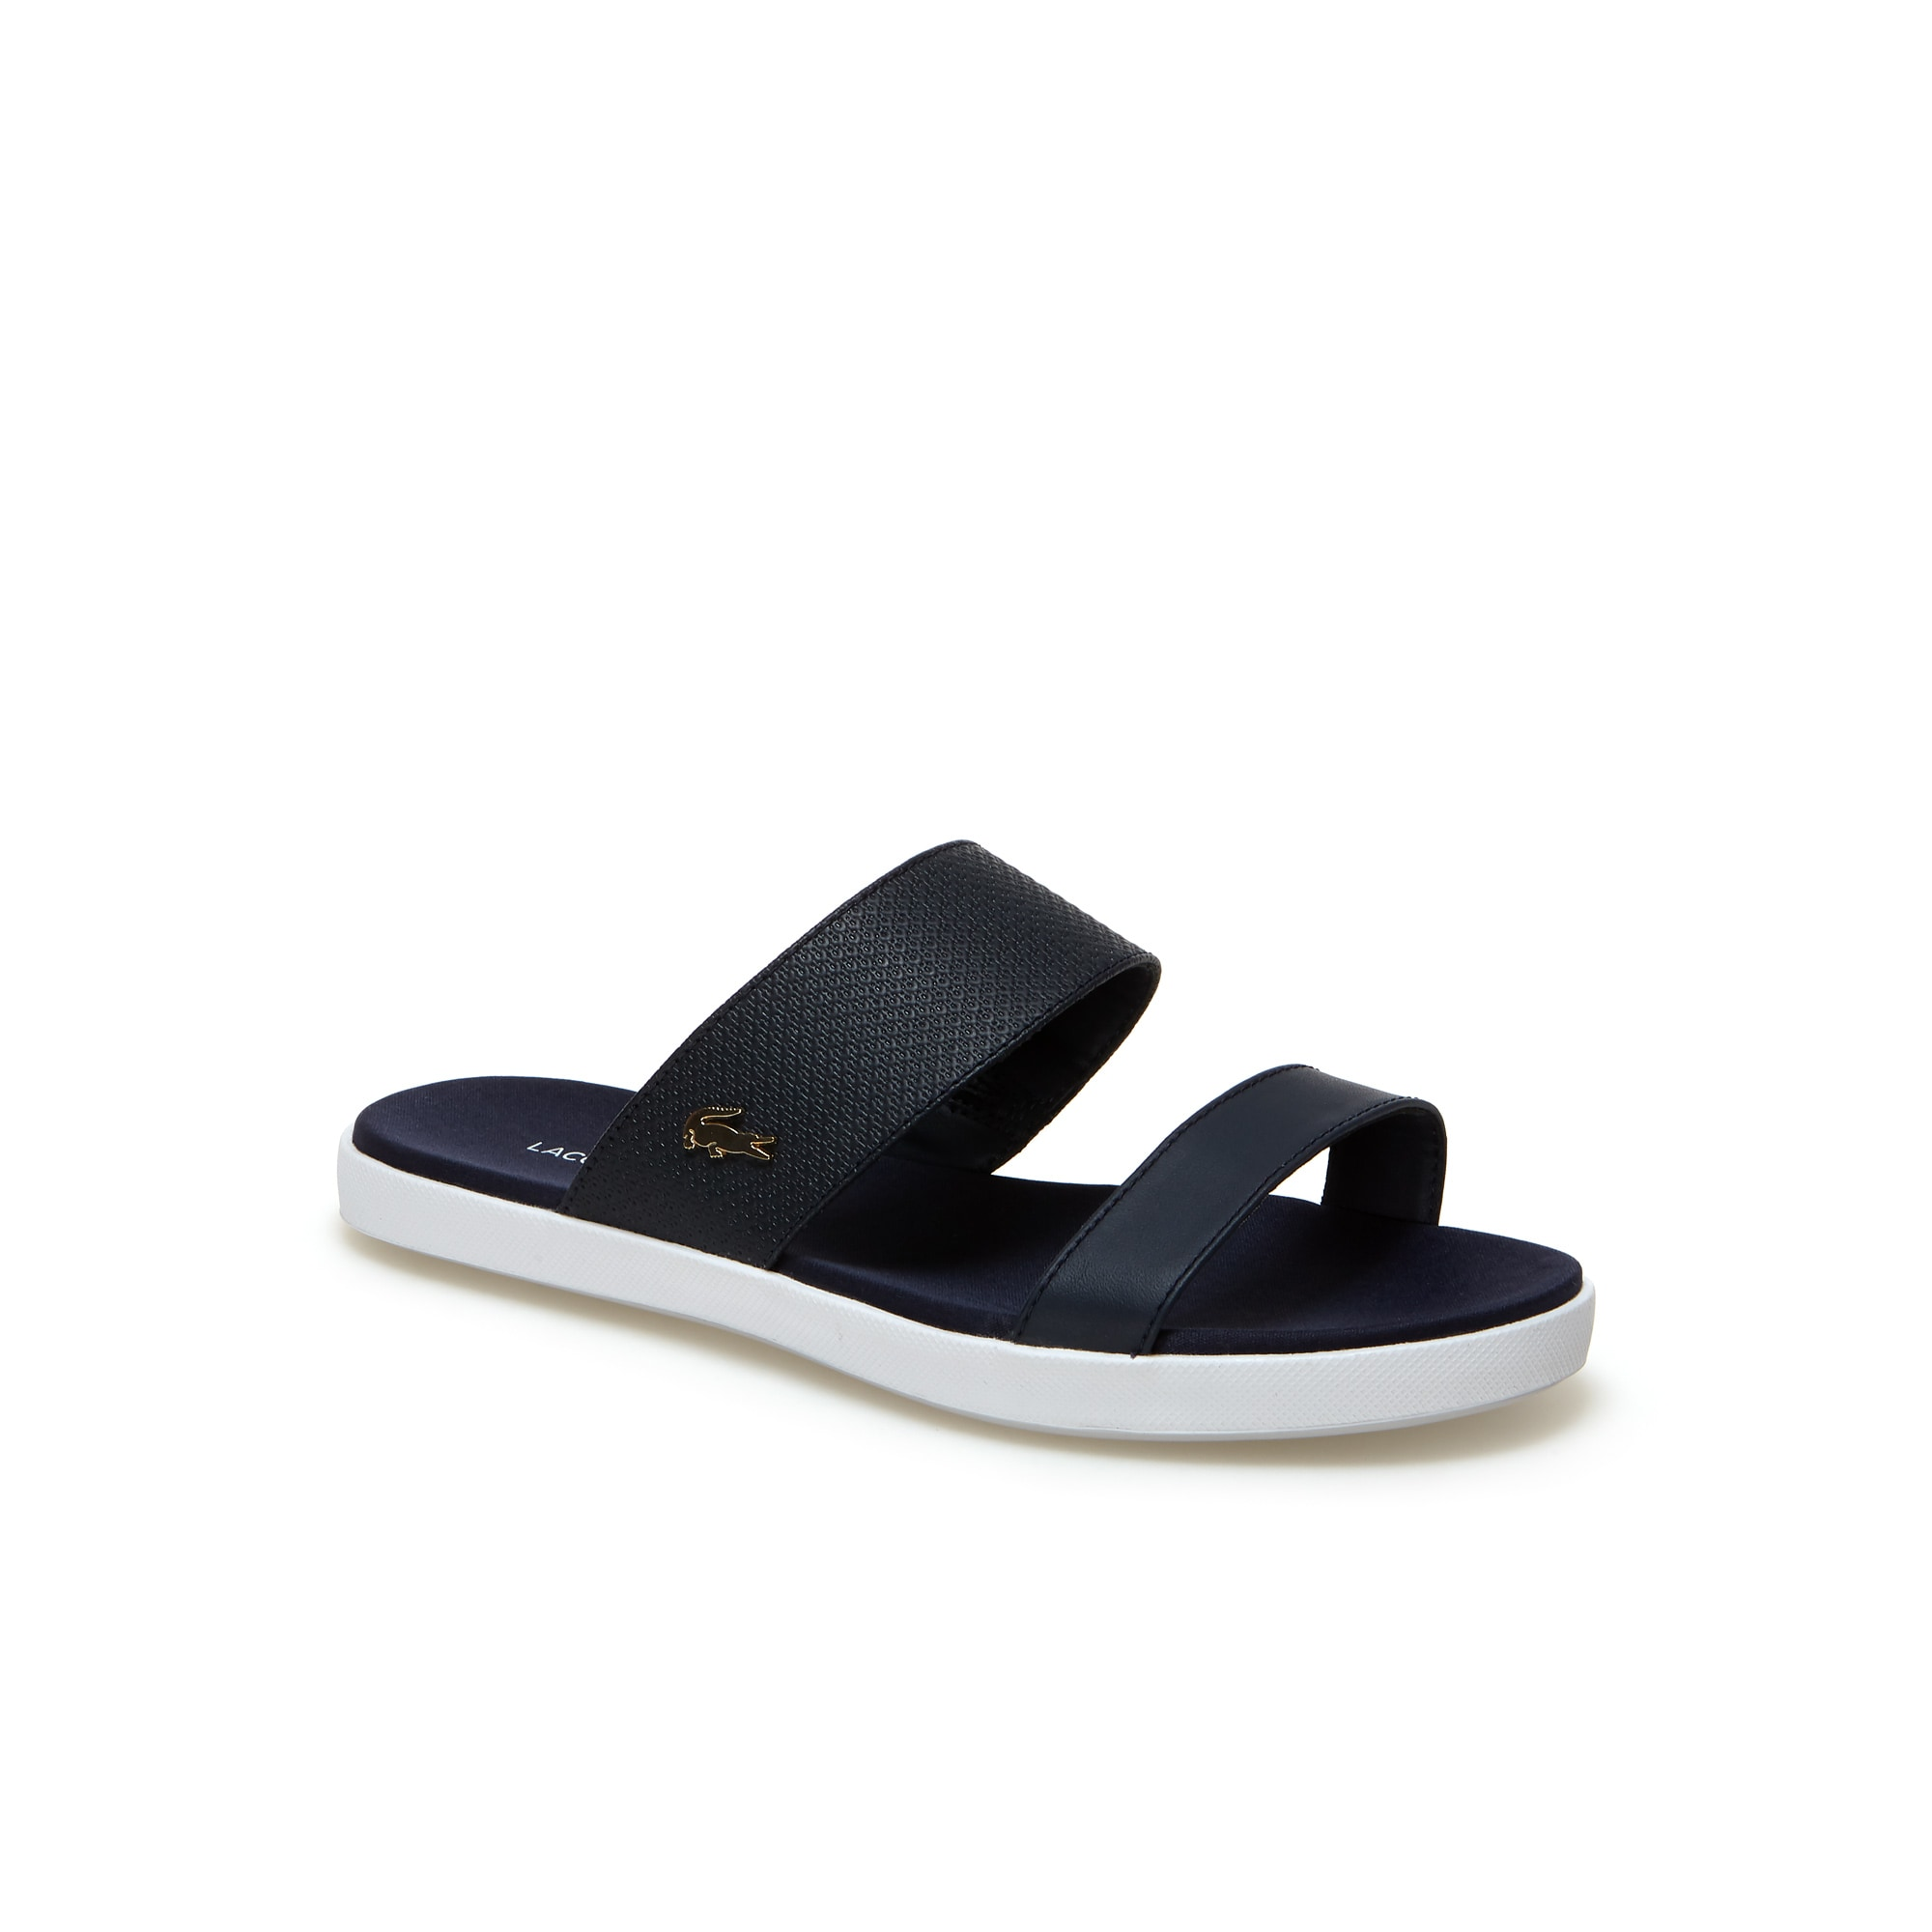 Women's Natoy Leather Sandals